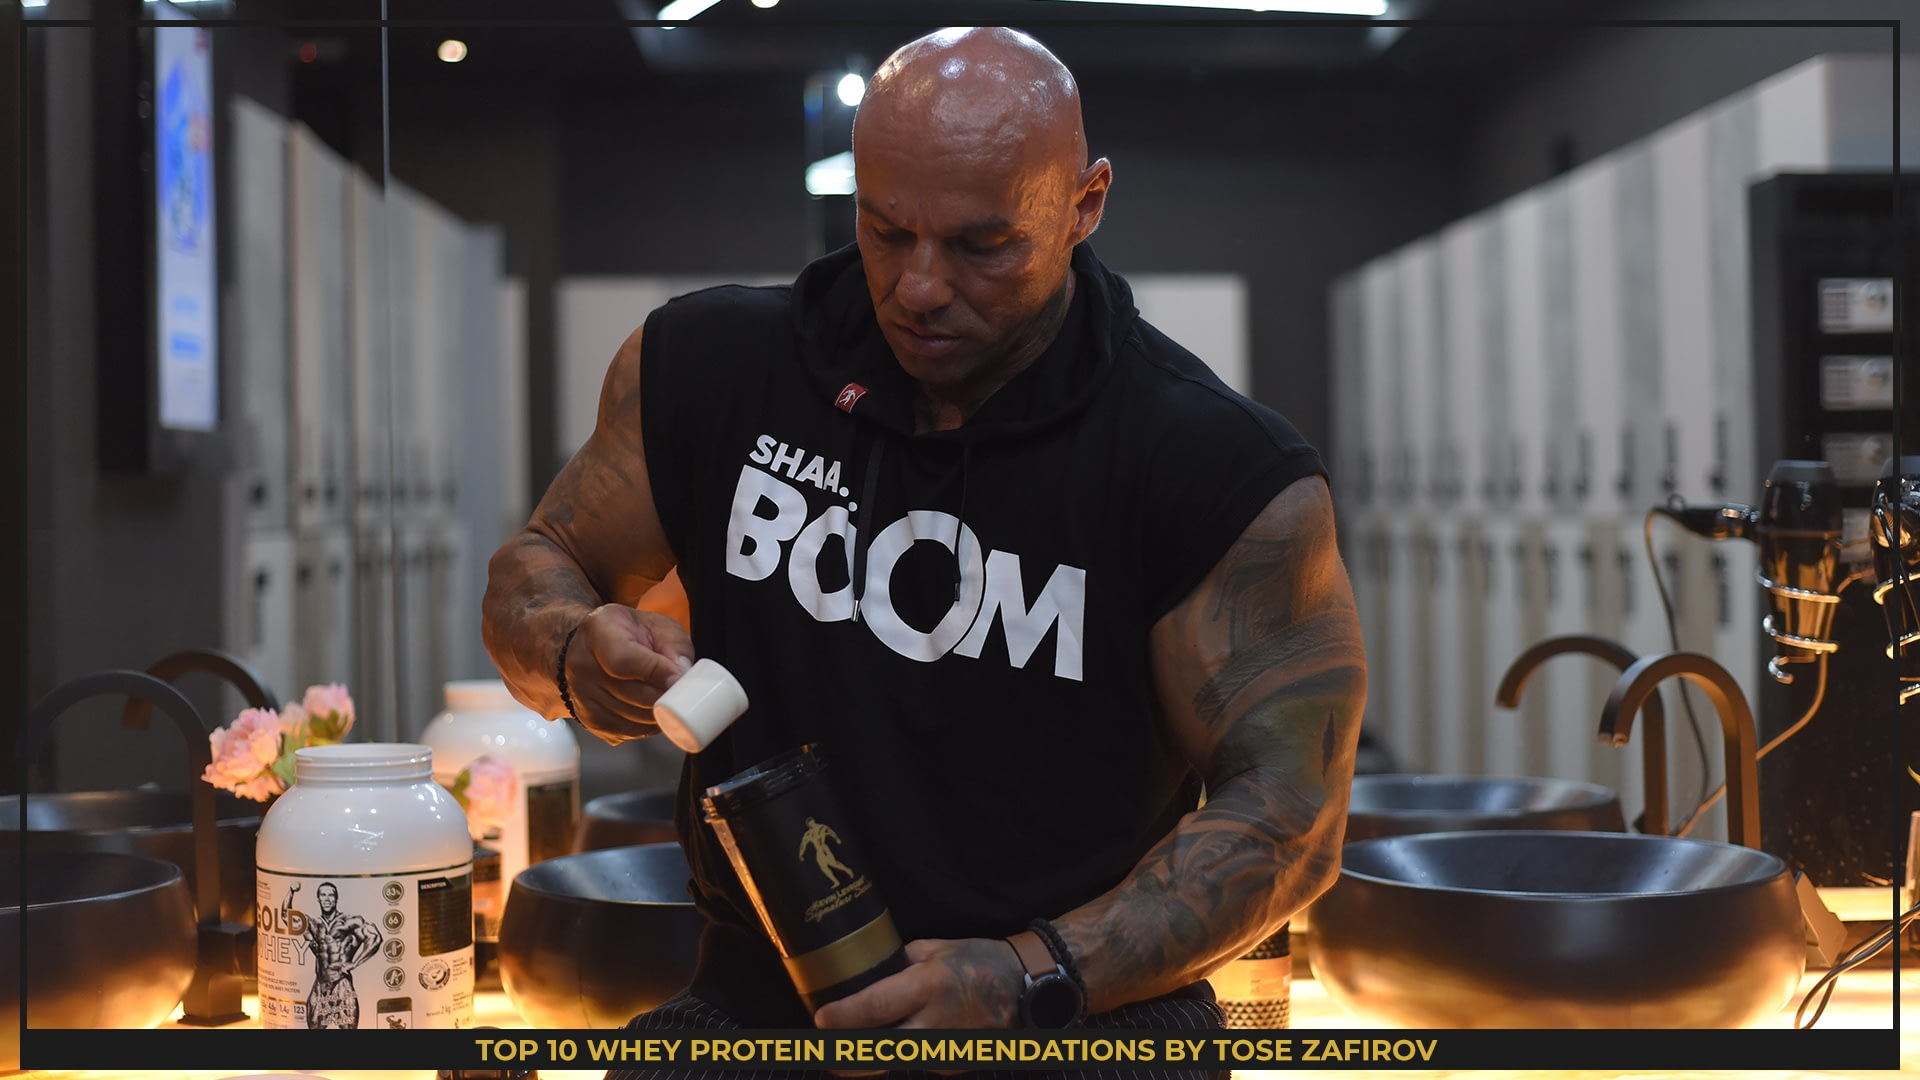 Tose Zafirov mixing a cup of Kevin Levrone Protein by the Gold Signature Series in a luxury bathroom, while wearing black shirt with ''BOOM'', white letters and a hood. There is a protein in the background.